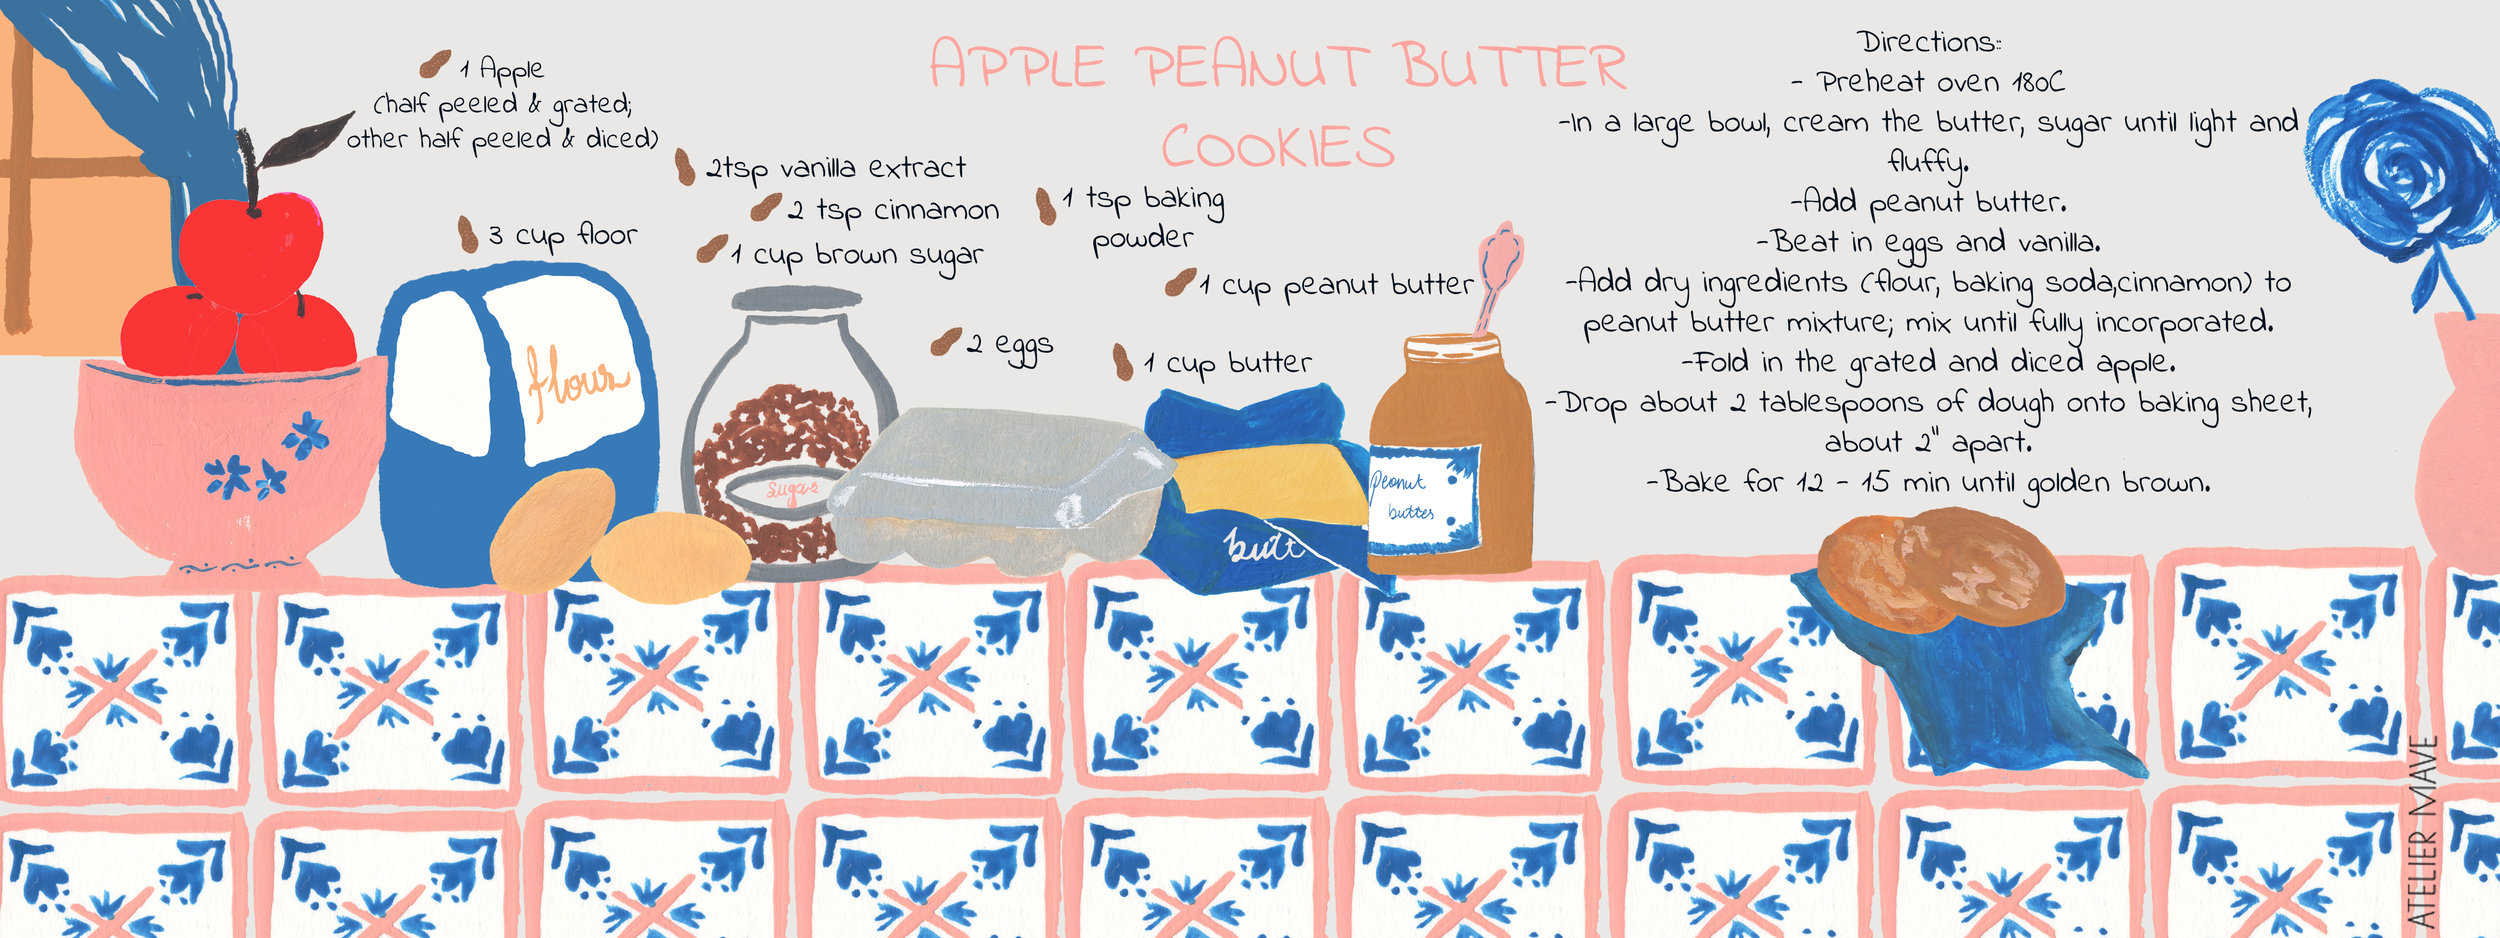 Atelier Mave_ apple peanut recipe.jpg